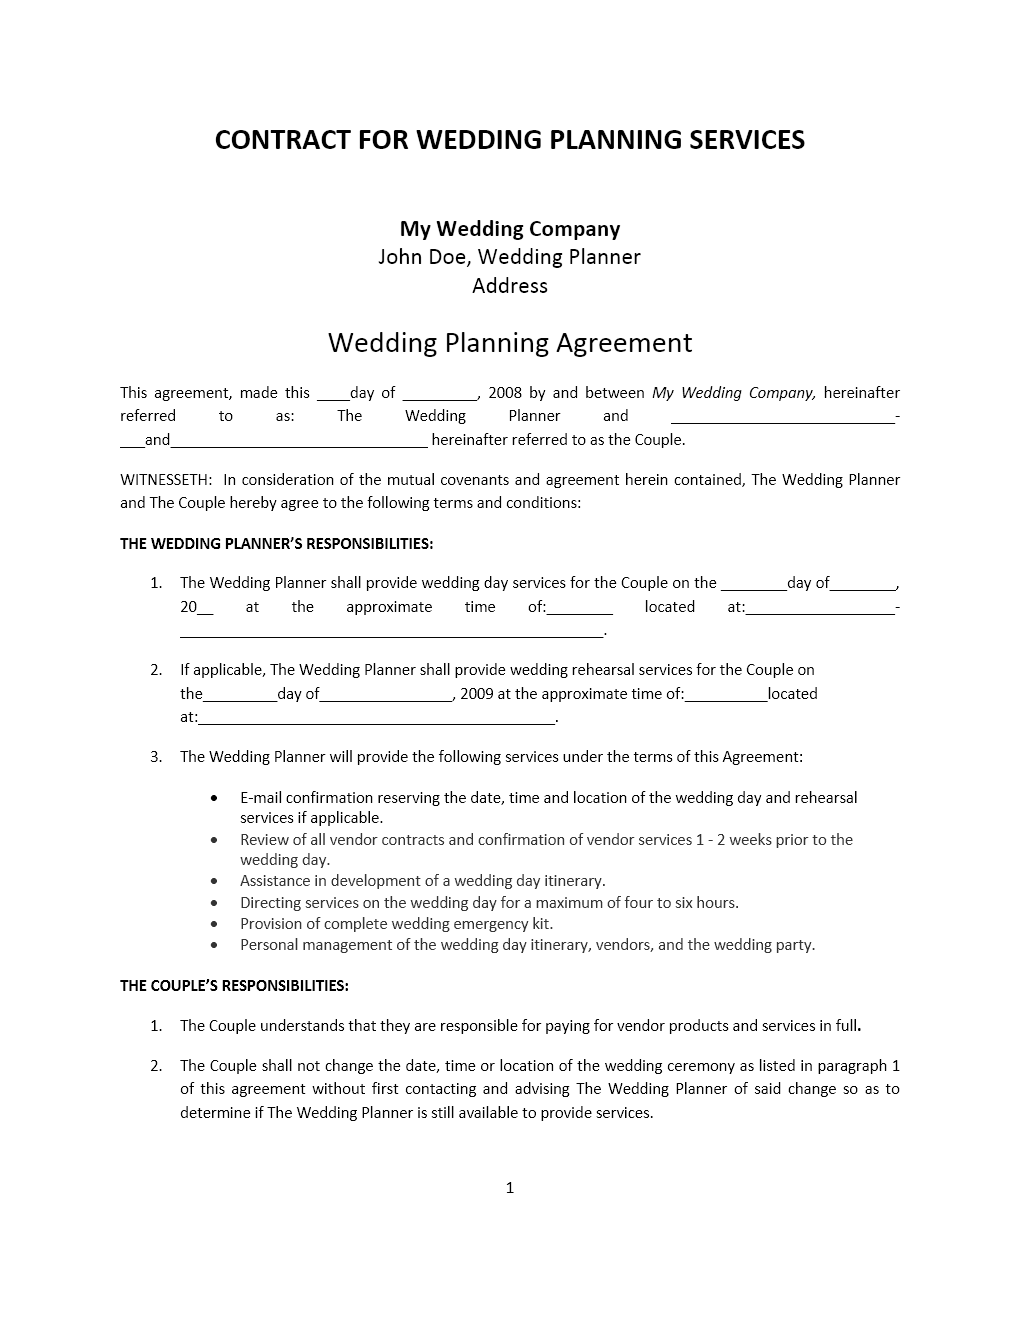 wedding planner contract template. Resume Example. Resume CV Cover Letter